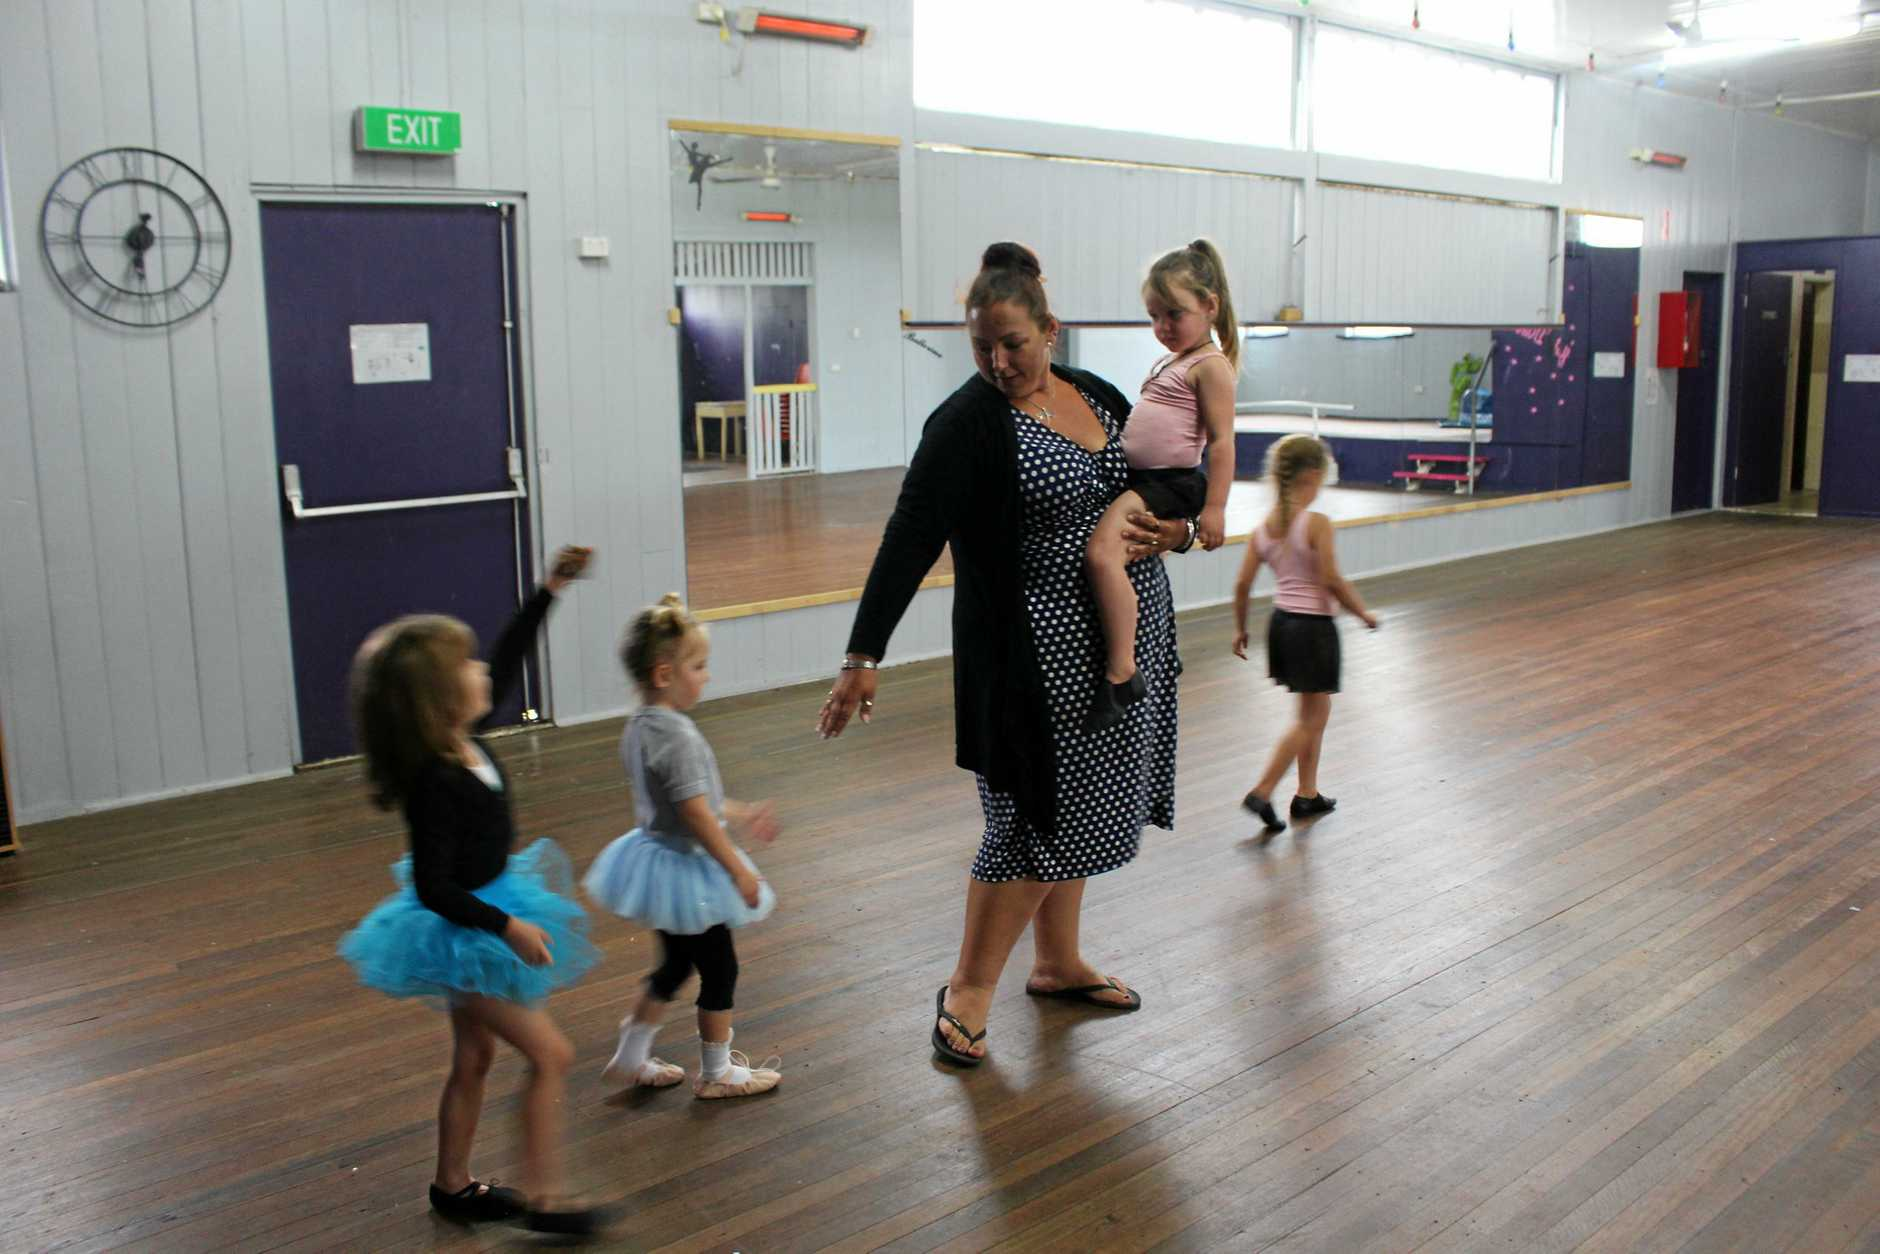 SOLDIERING ON: Like many resilient women in our community, Suzette Benz just knows how to make it work. Despite the curveballs life has thrown her, she is still getting joy and hugs out of every day. She runs a Move Dance School in Warwick, cares for five kids and works full time at Styan and Lindenberg.